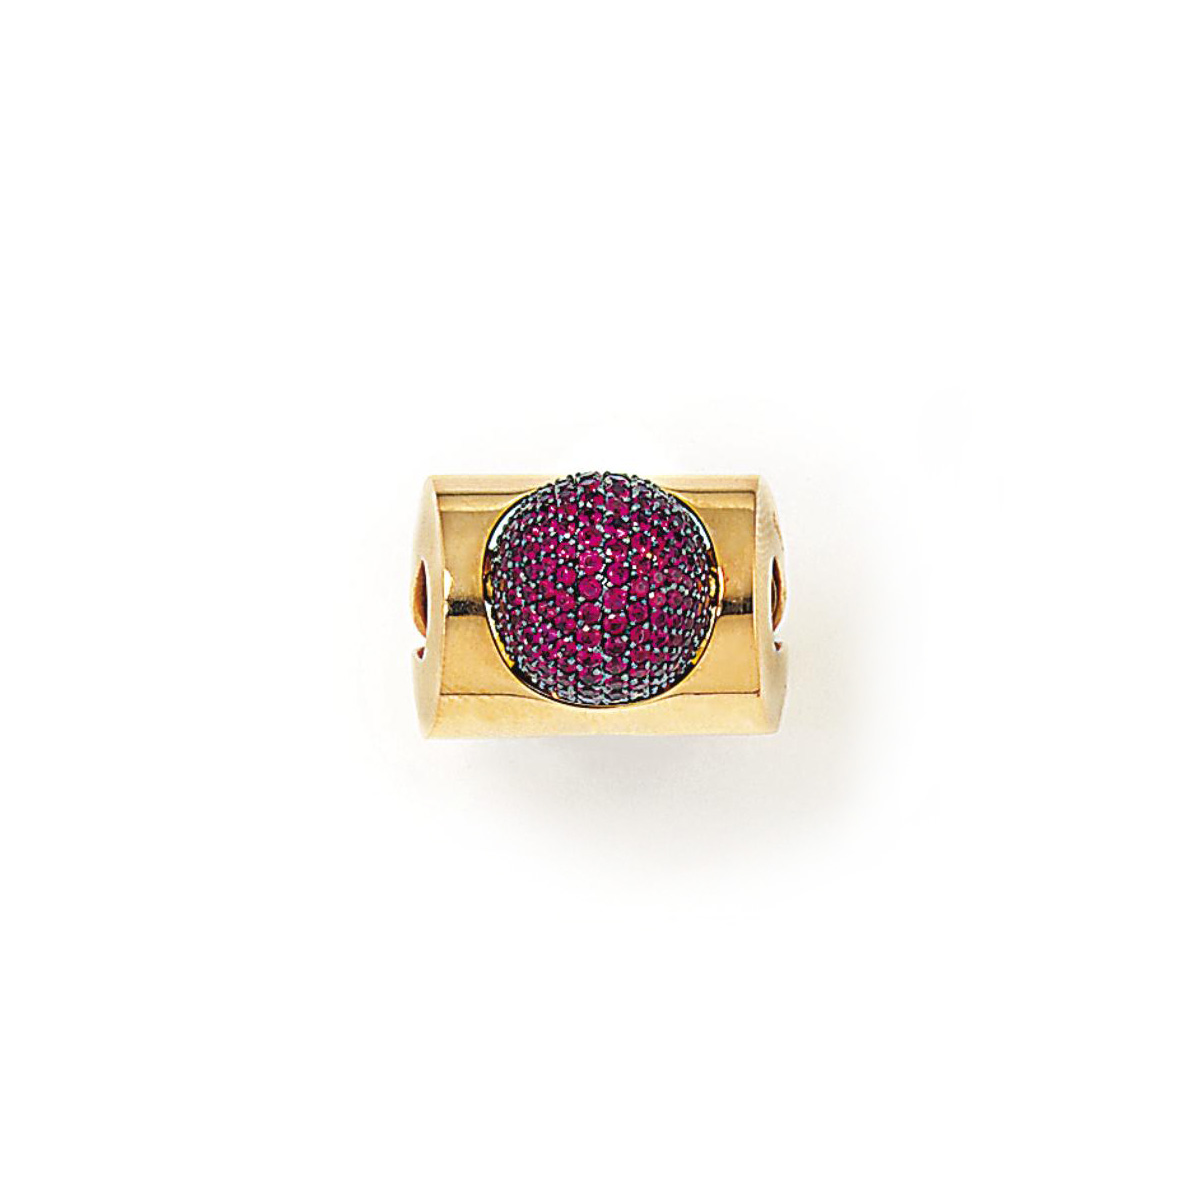 A RUBY DRESS RING, BY ENIGMA